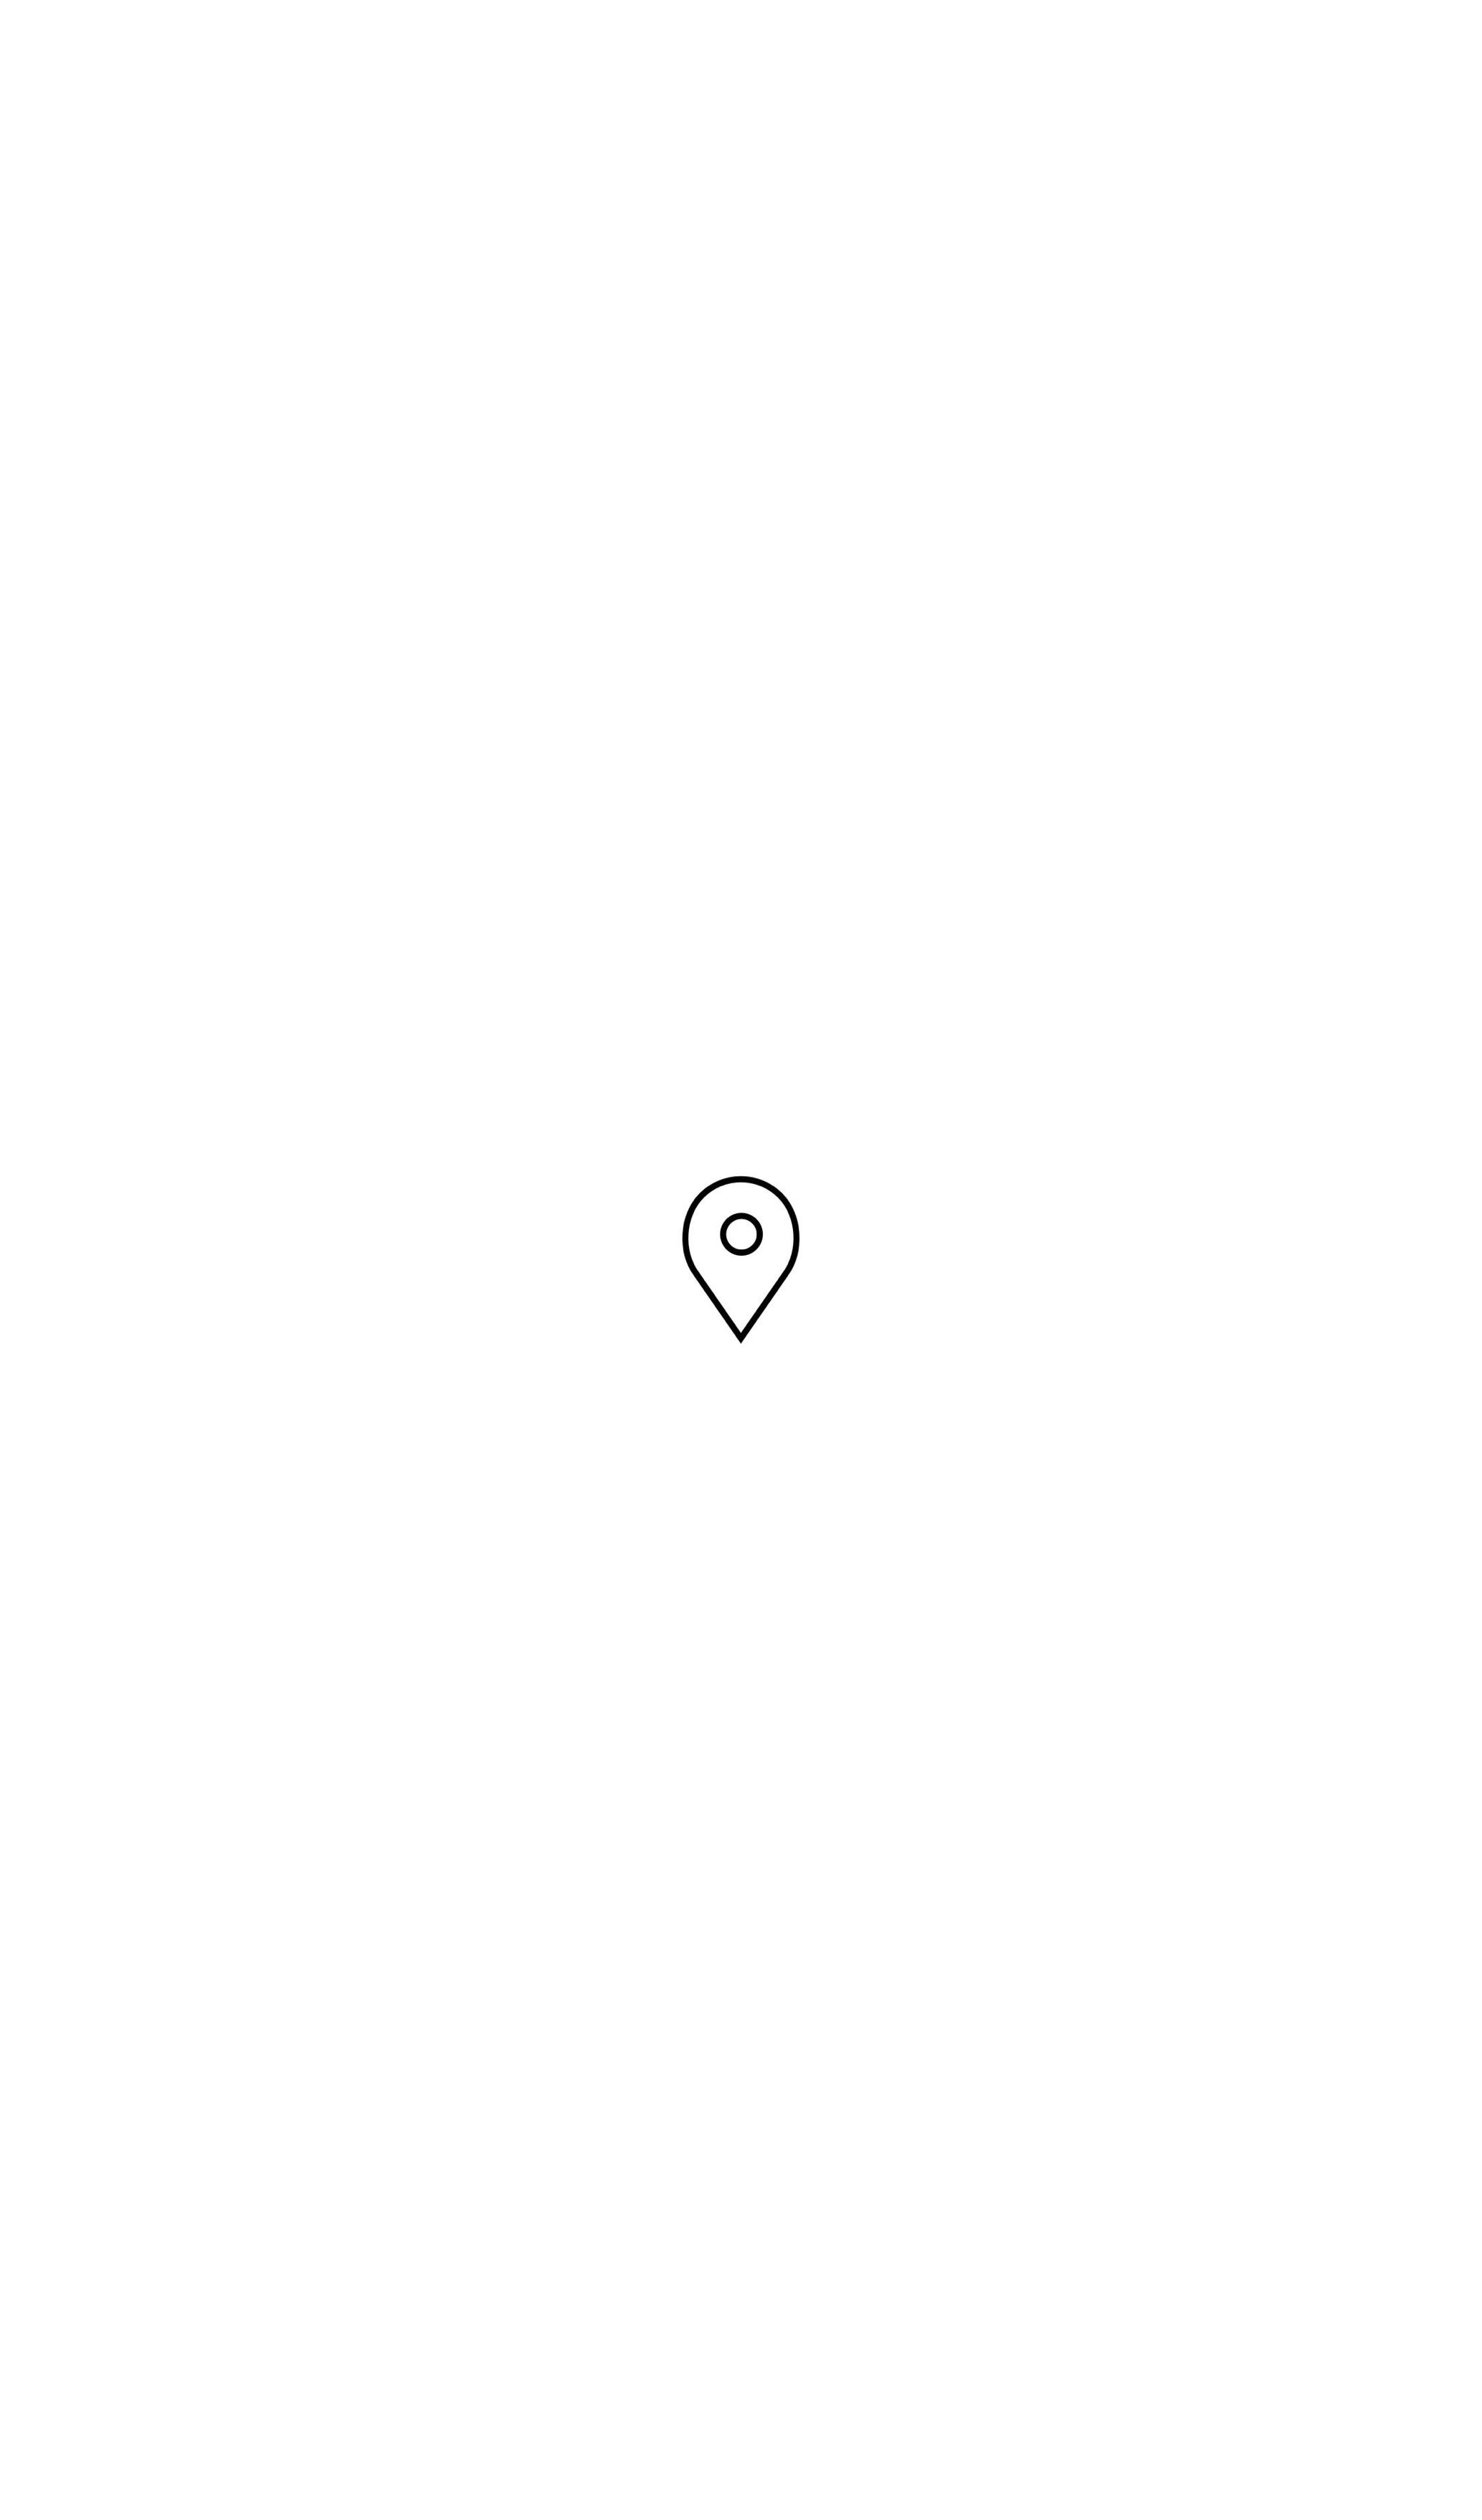 Location Instagram Highlight Icons Minimalist Drawing Instagram Icons